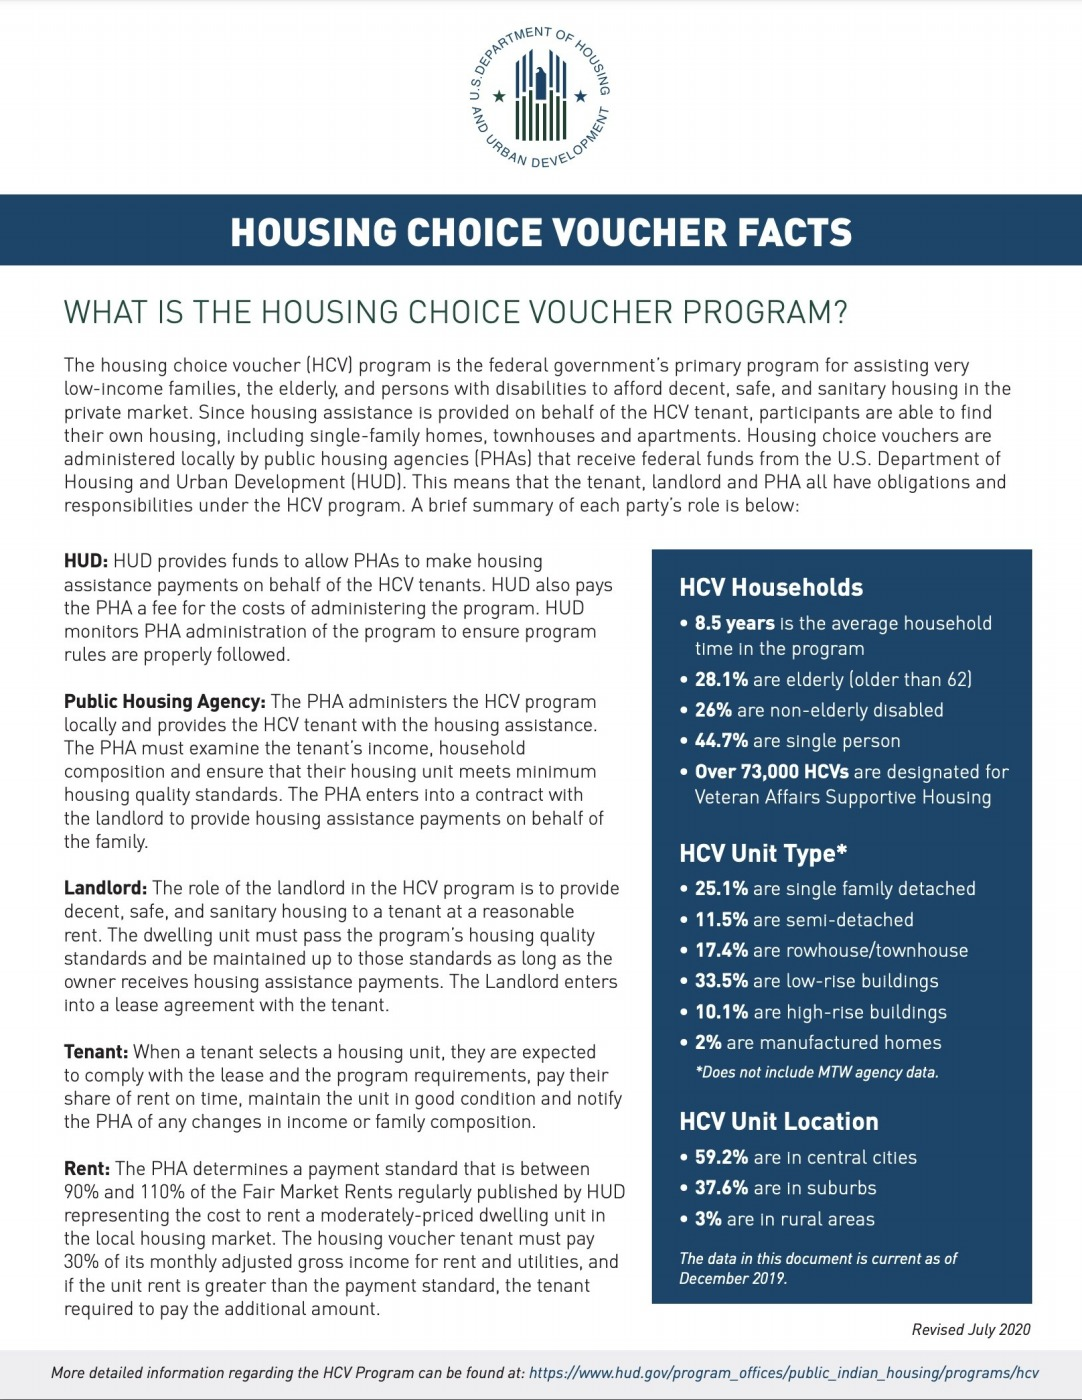 What is the Housing Choice Voucher (HCV) Program?